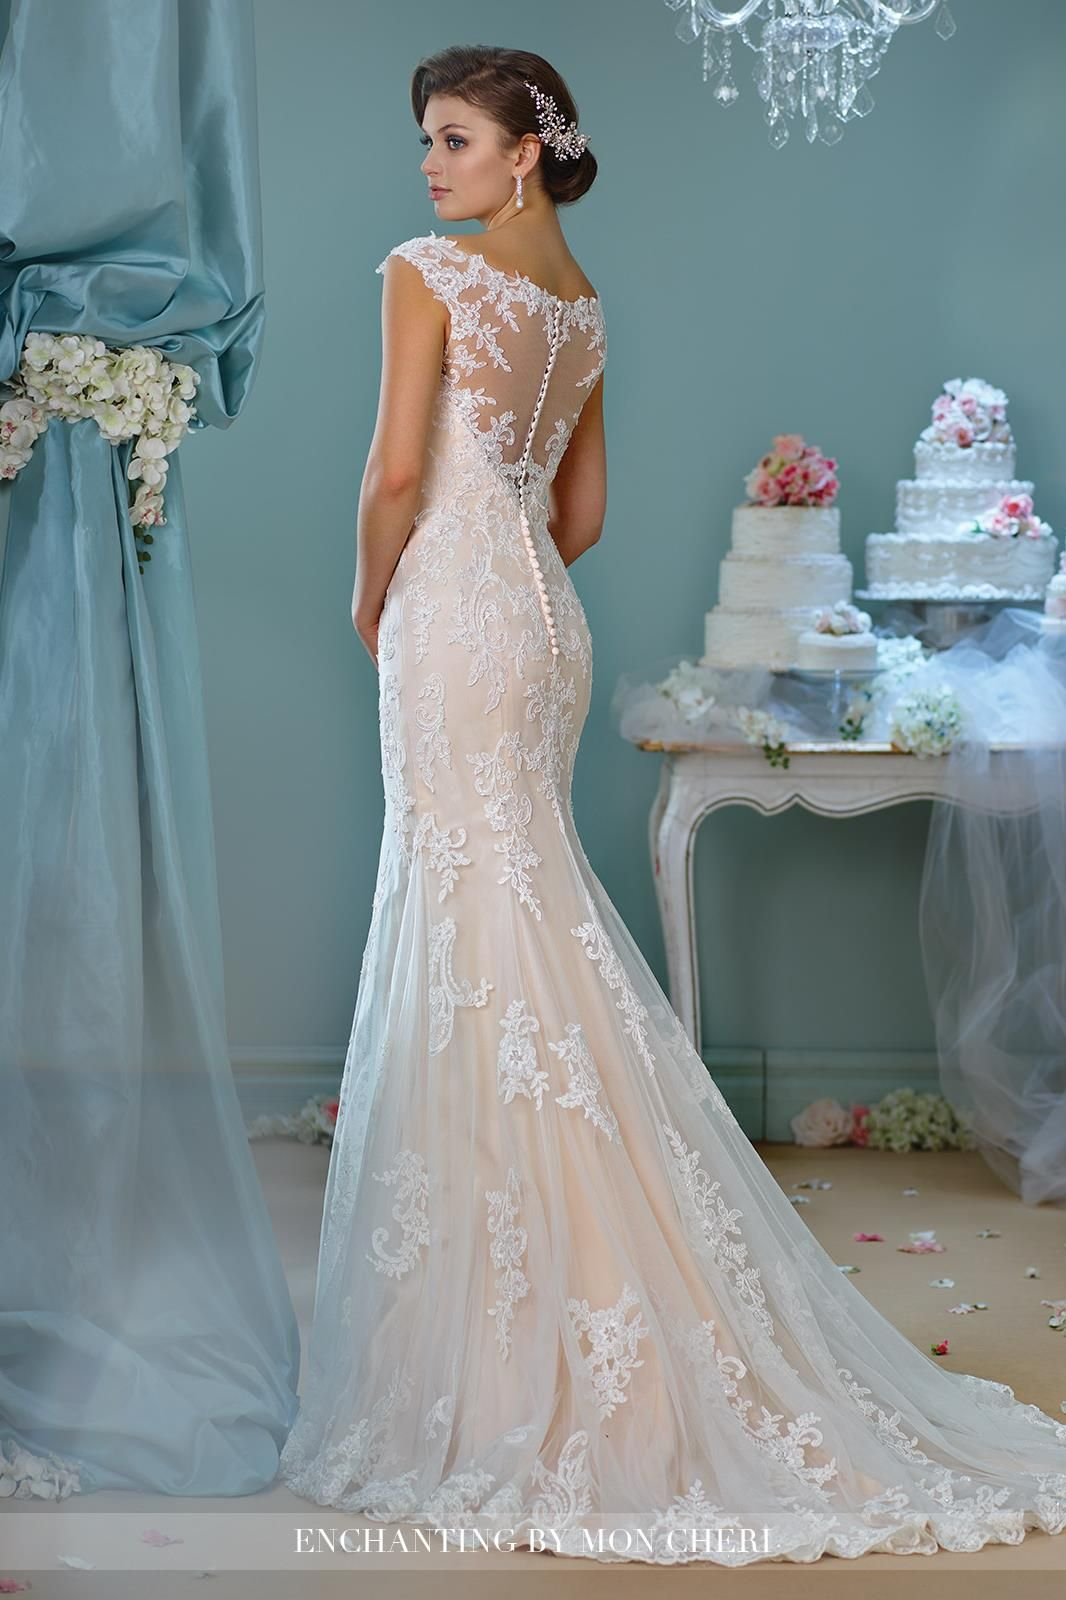 216159 Wedding Dress from enchanting by mon cheri   hitched.co.uk ...